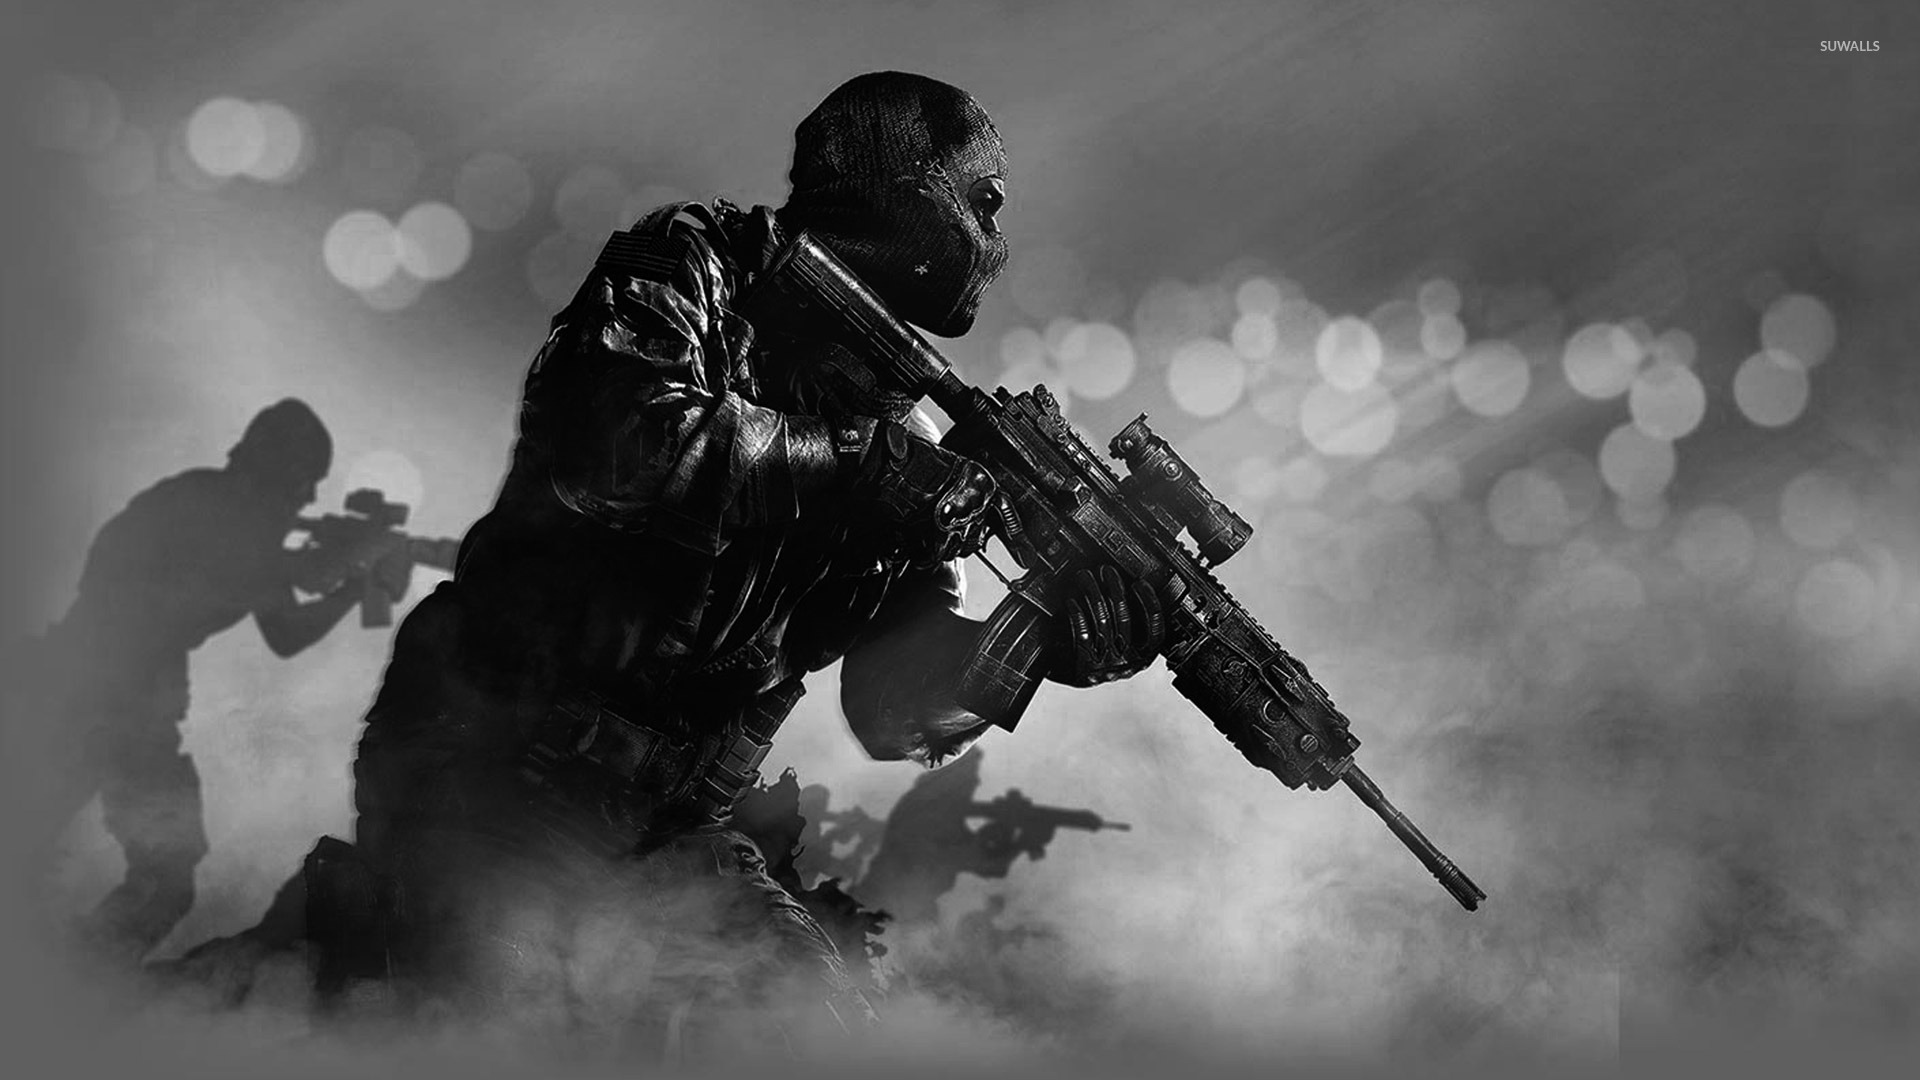 Call Of Duty Ghosts 19 Wallpaper Game Wallpapers 29822